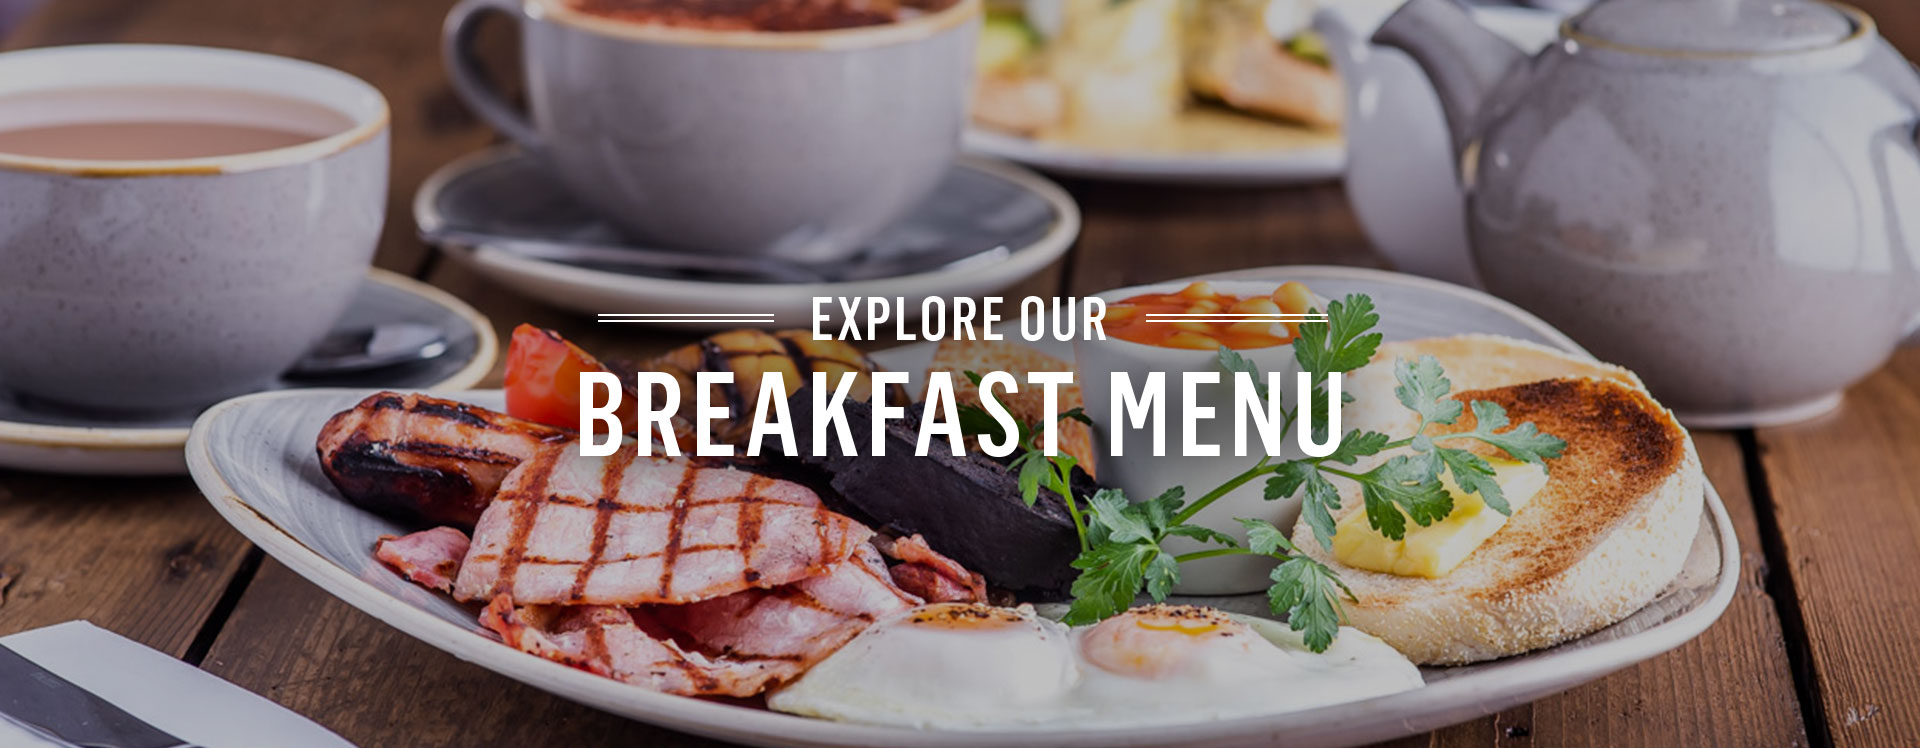 Breakfast at The Scarbrough Hotel - Book a table